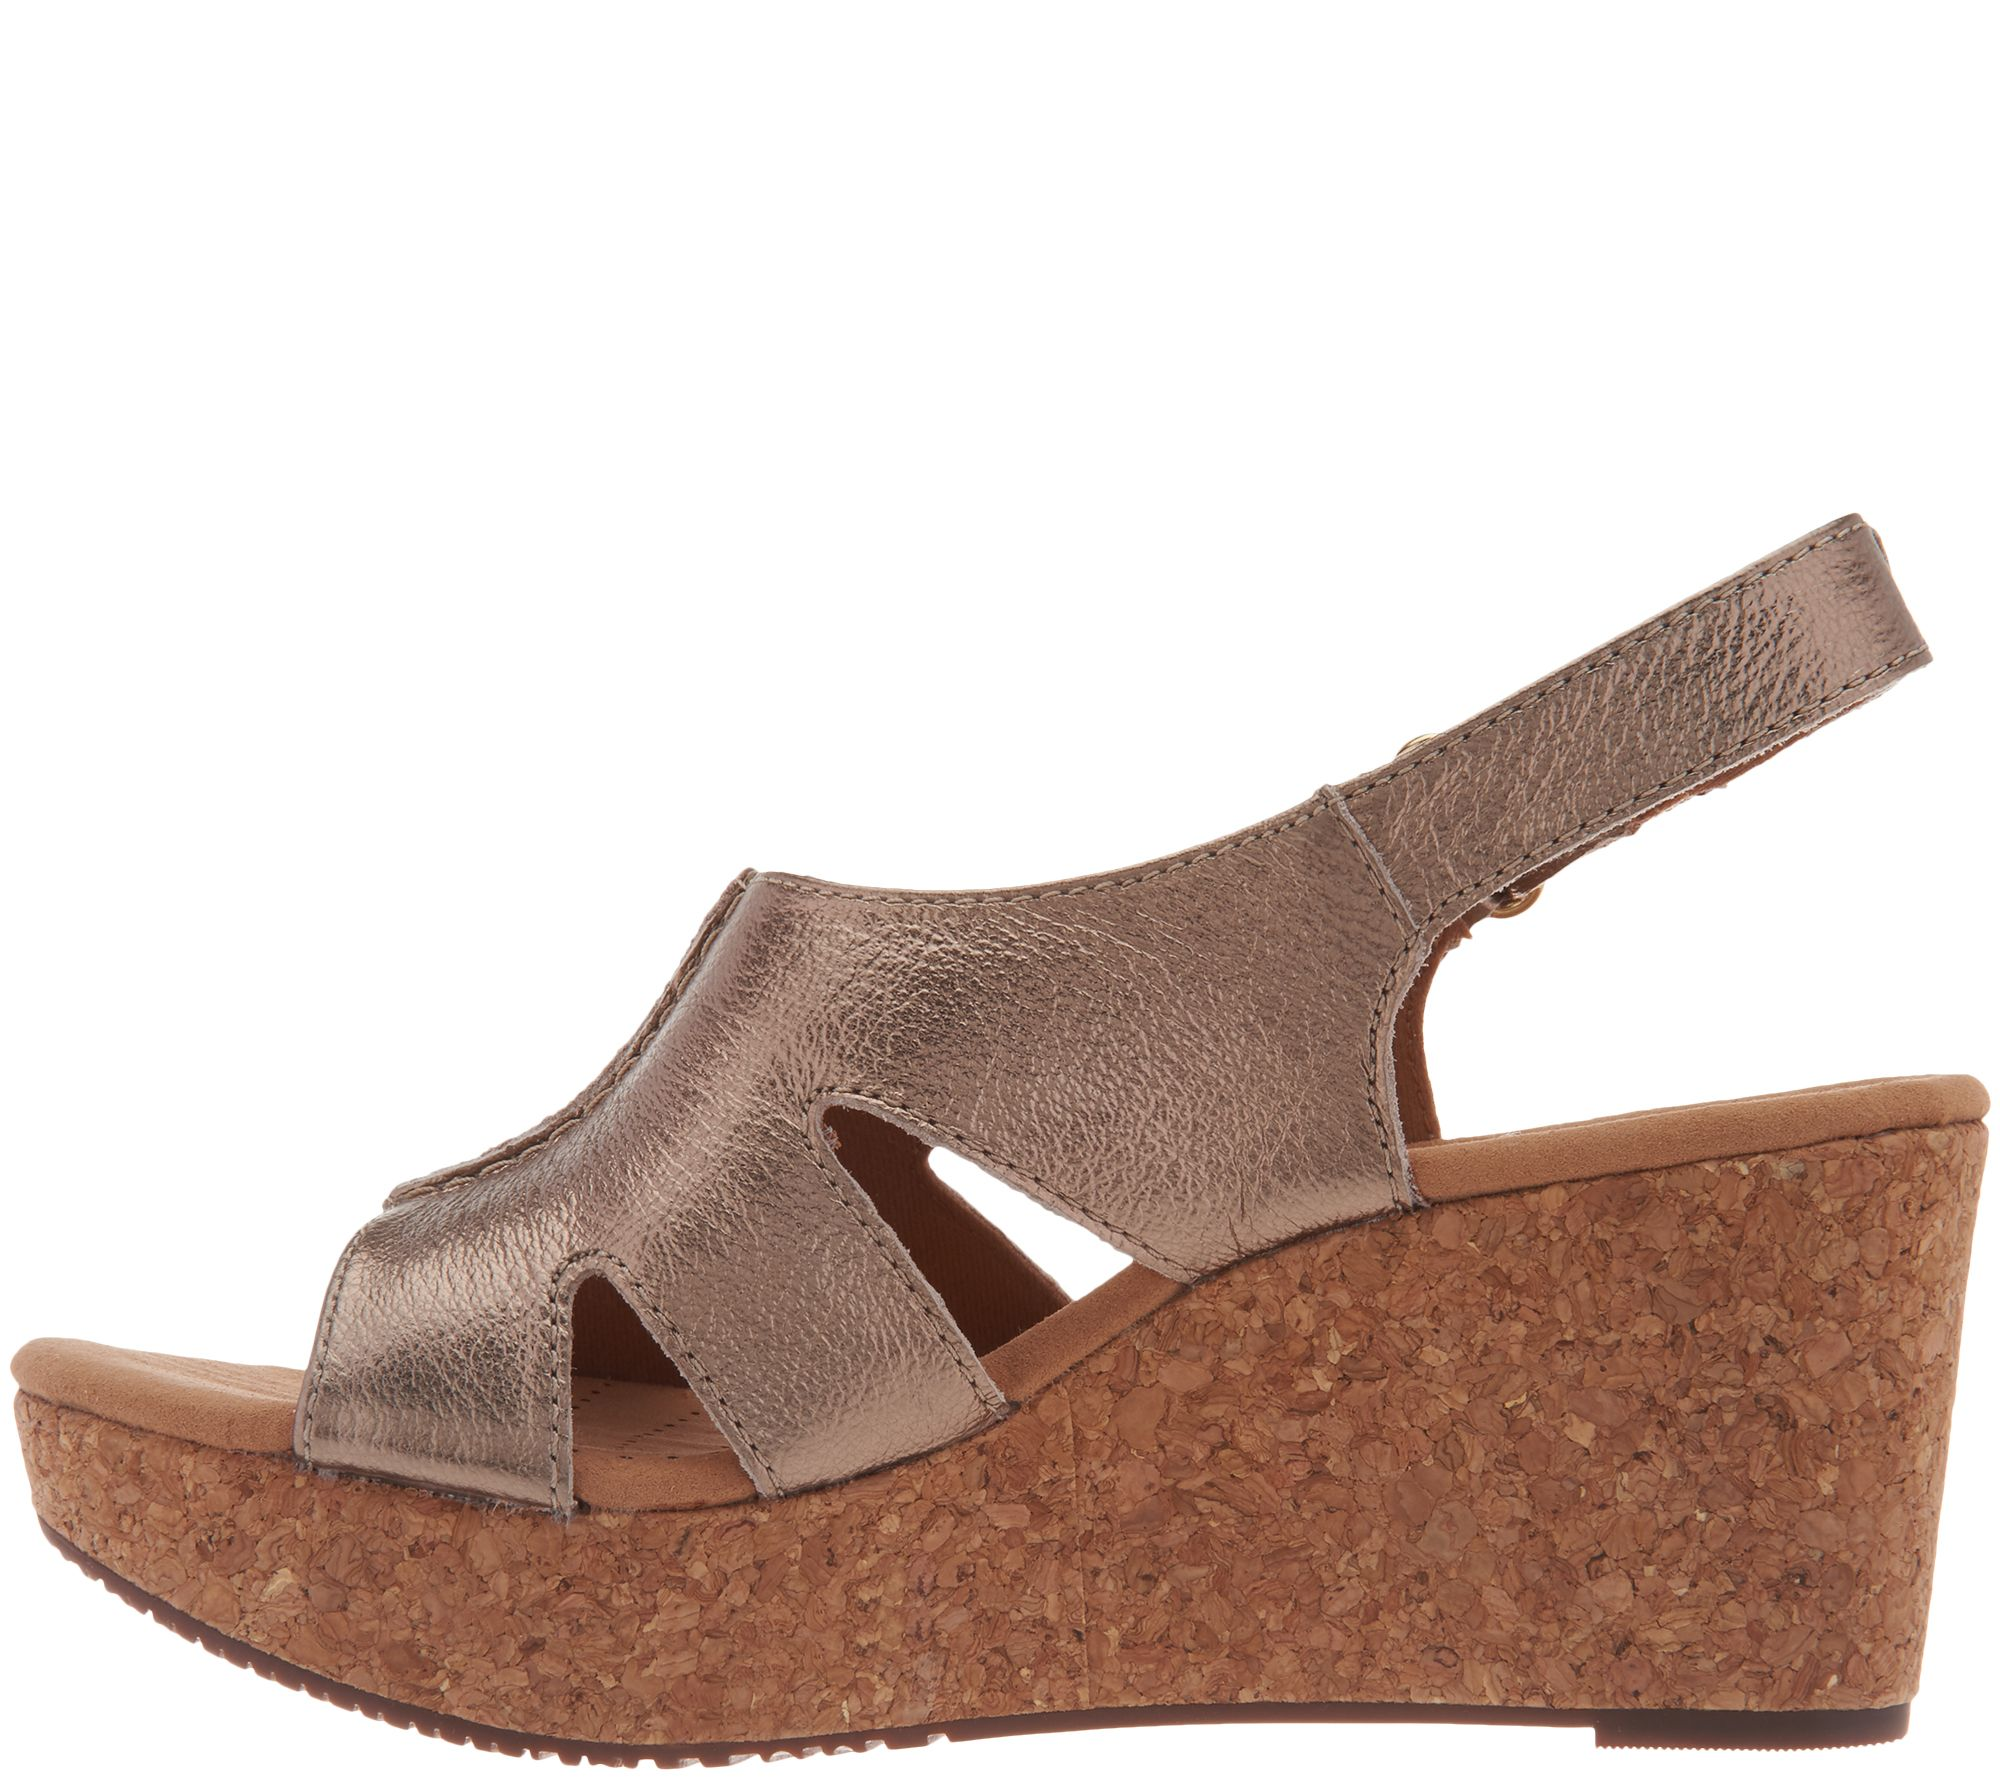 42cef8edabdc Clarks Leather Cork Wedge Adjustable Sandals - Annadel Bari - Page 1 —  QVC.com